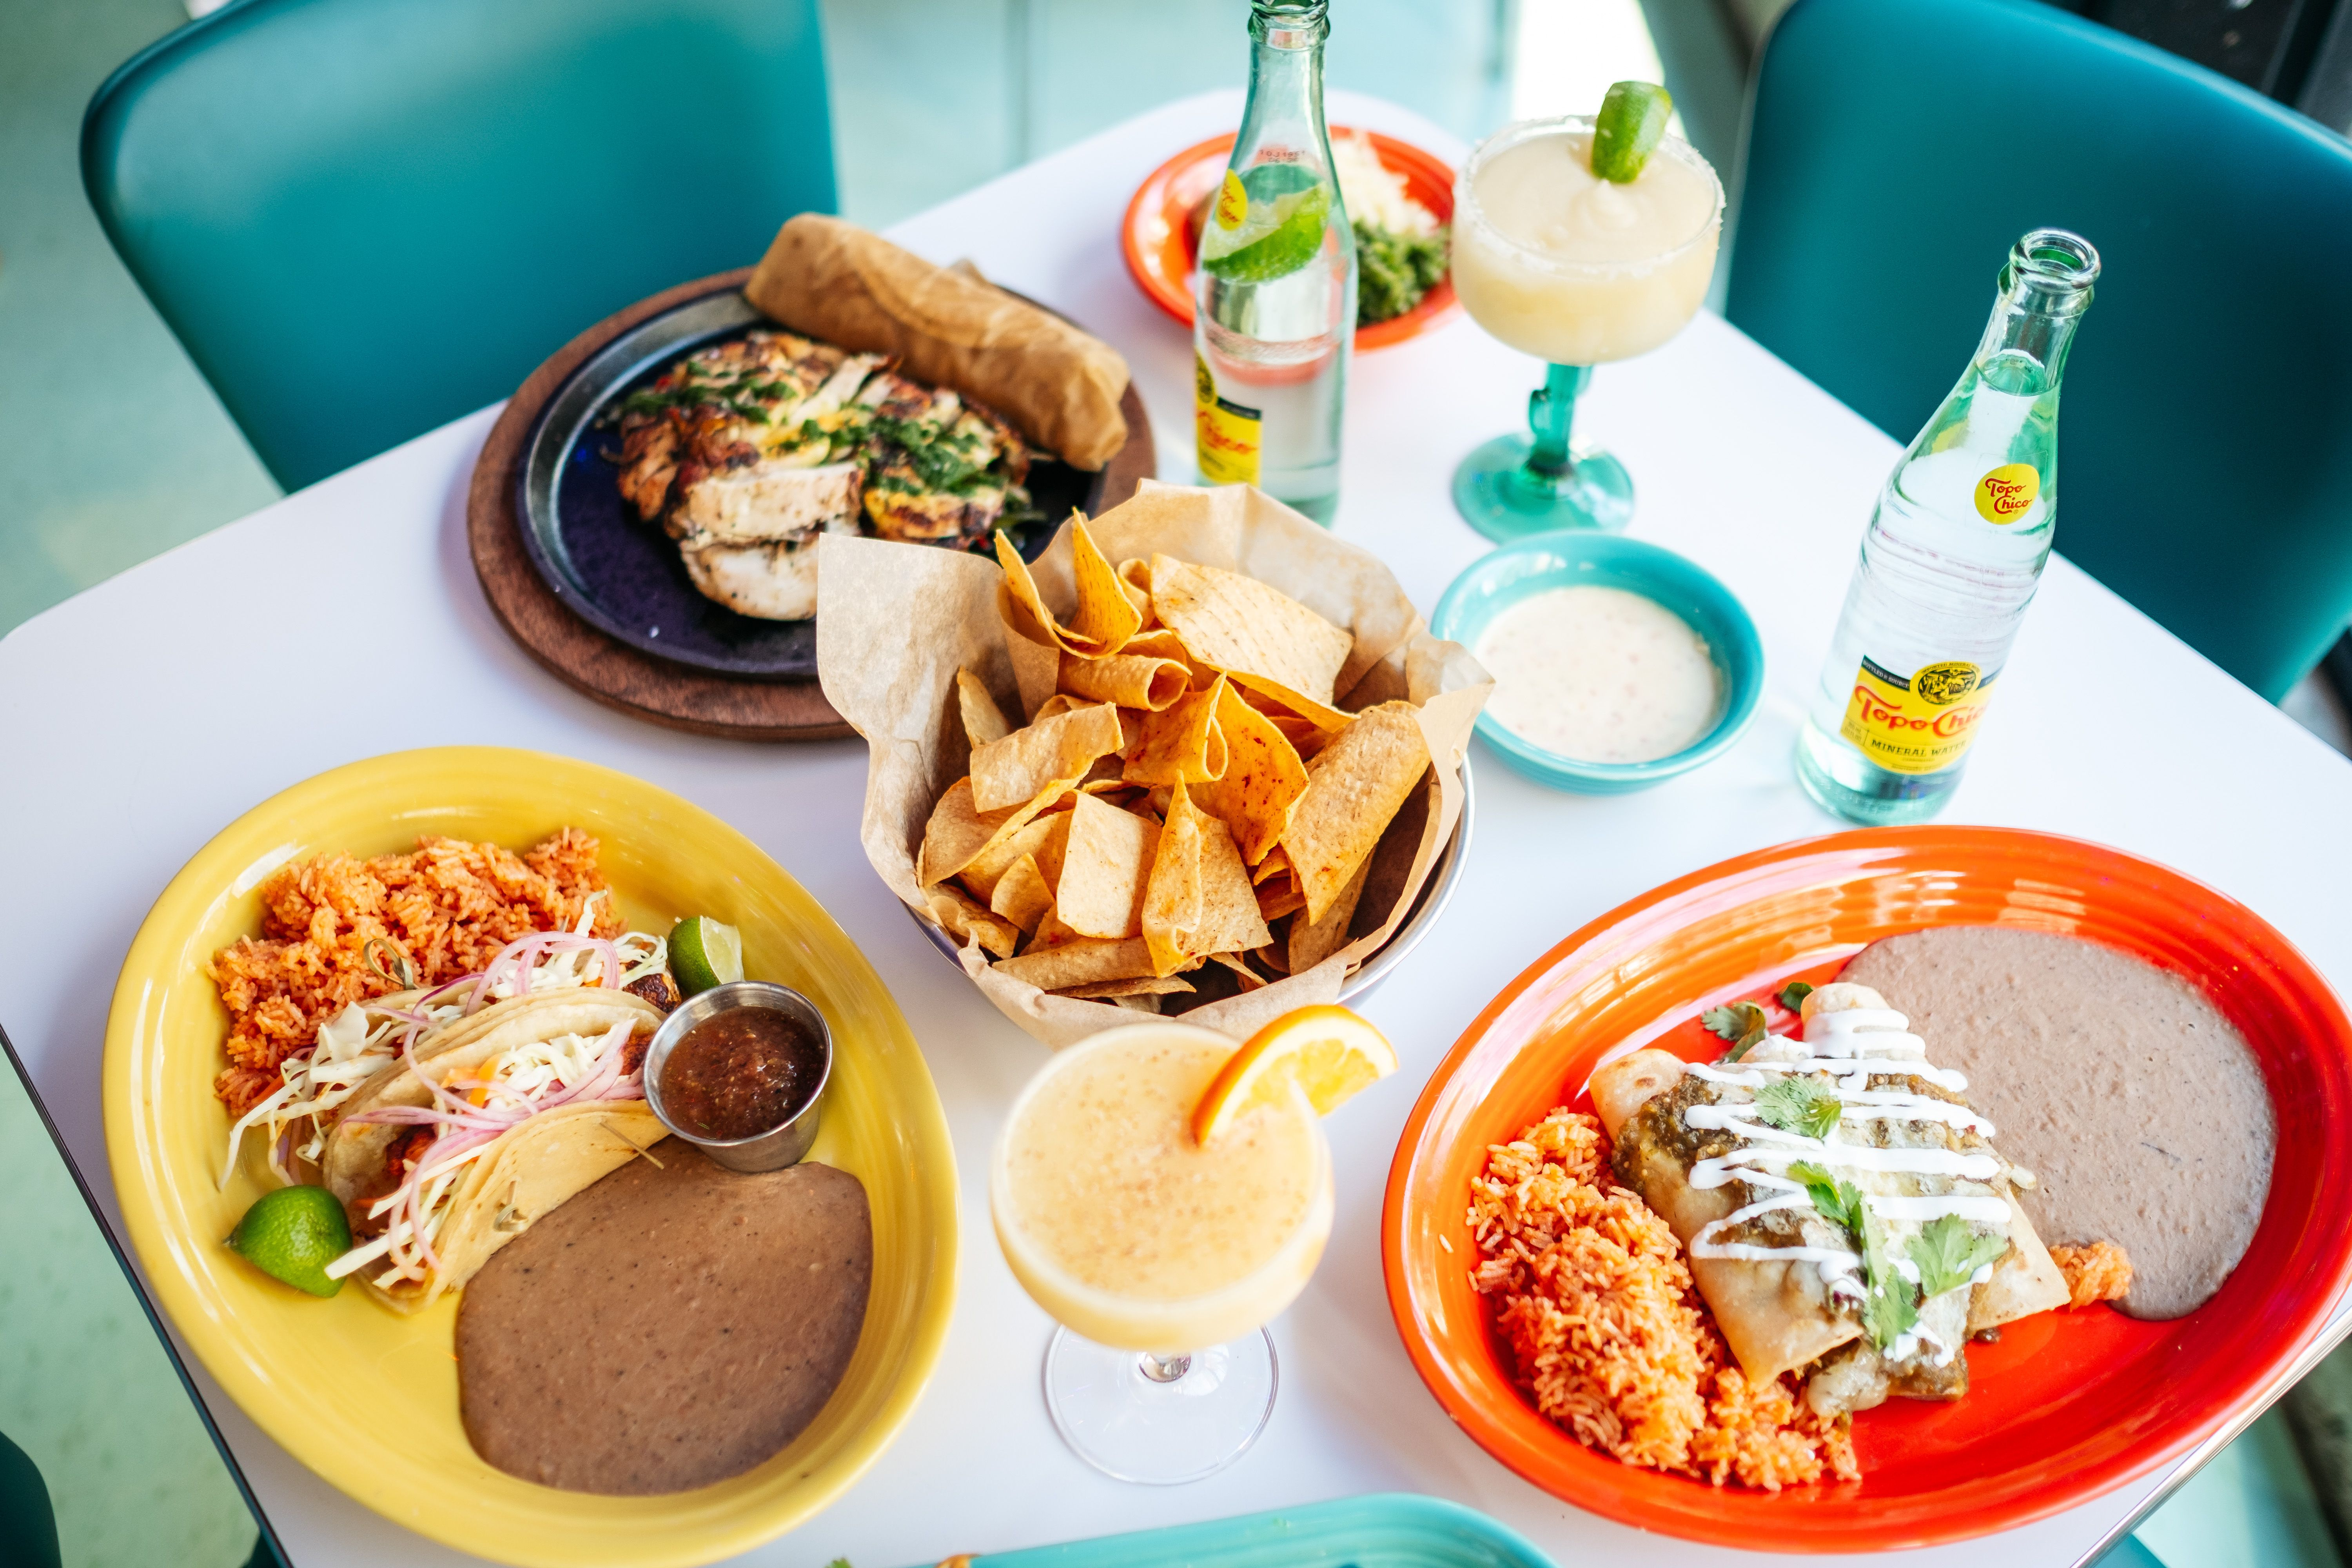 grilled fish tacos, tortilla chips, margarita, and flautas at Queso Beso